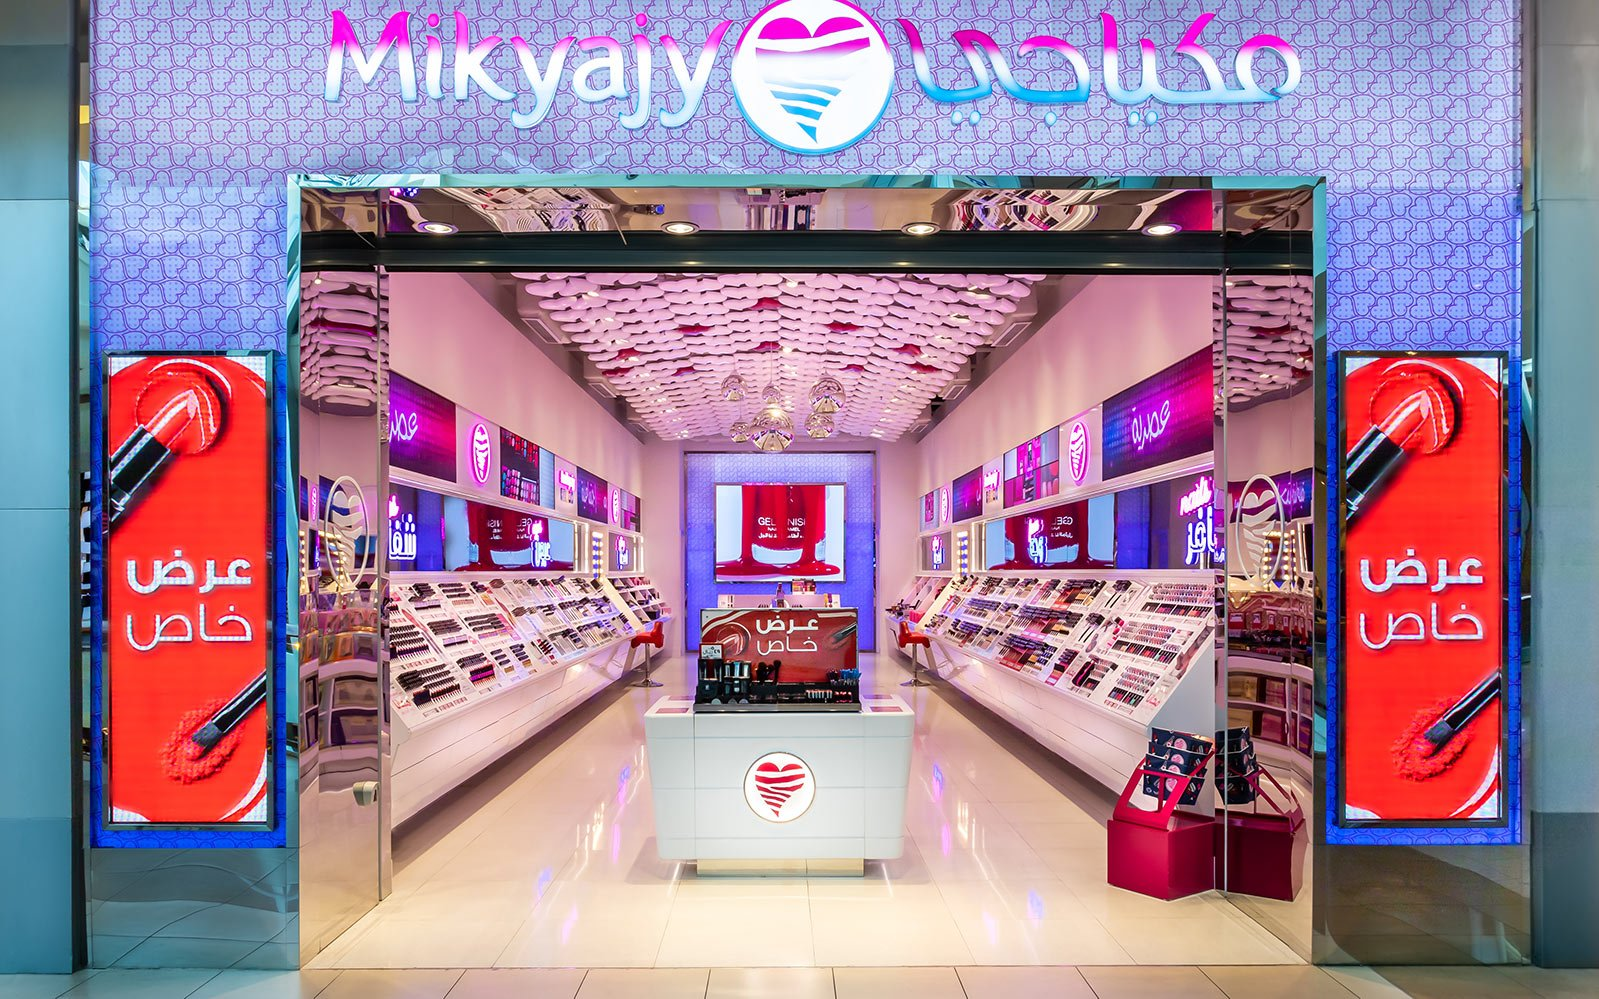 Mikyajy Discount Coupon Code: AC182   Get upto 70% Off on all Purchases